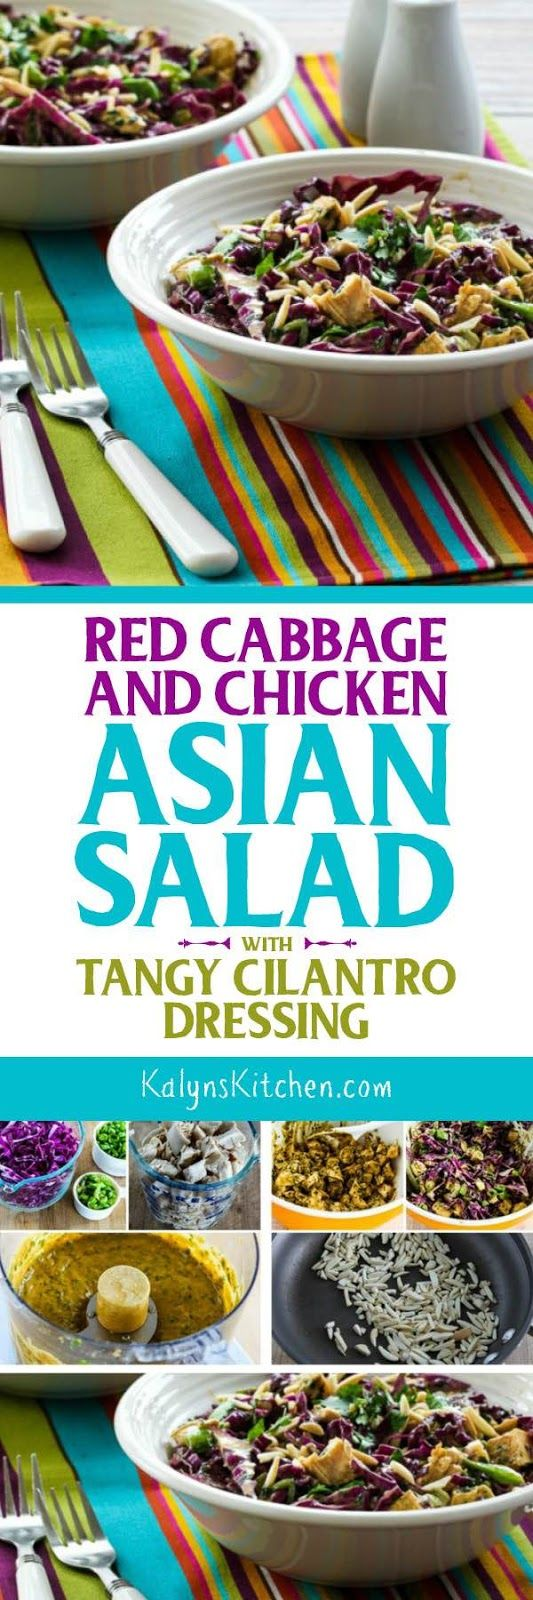 this Red Cabbage and Chicken Asian Salad with Tangy Cilantro Dressing ...